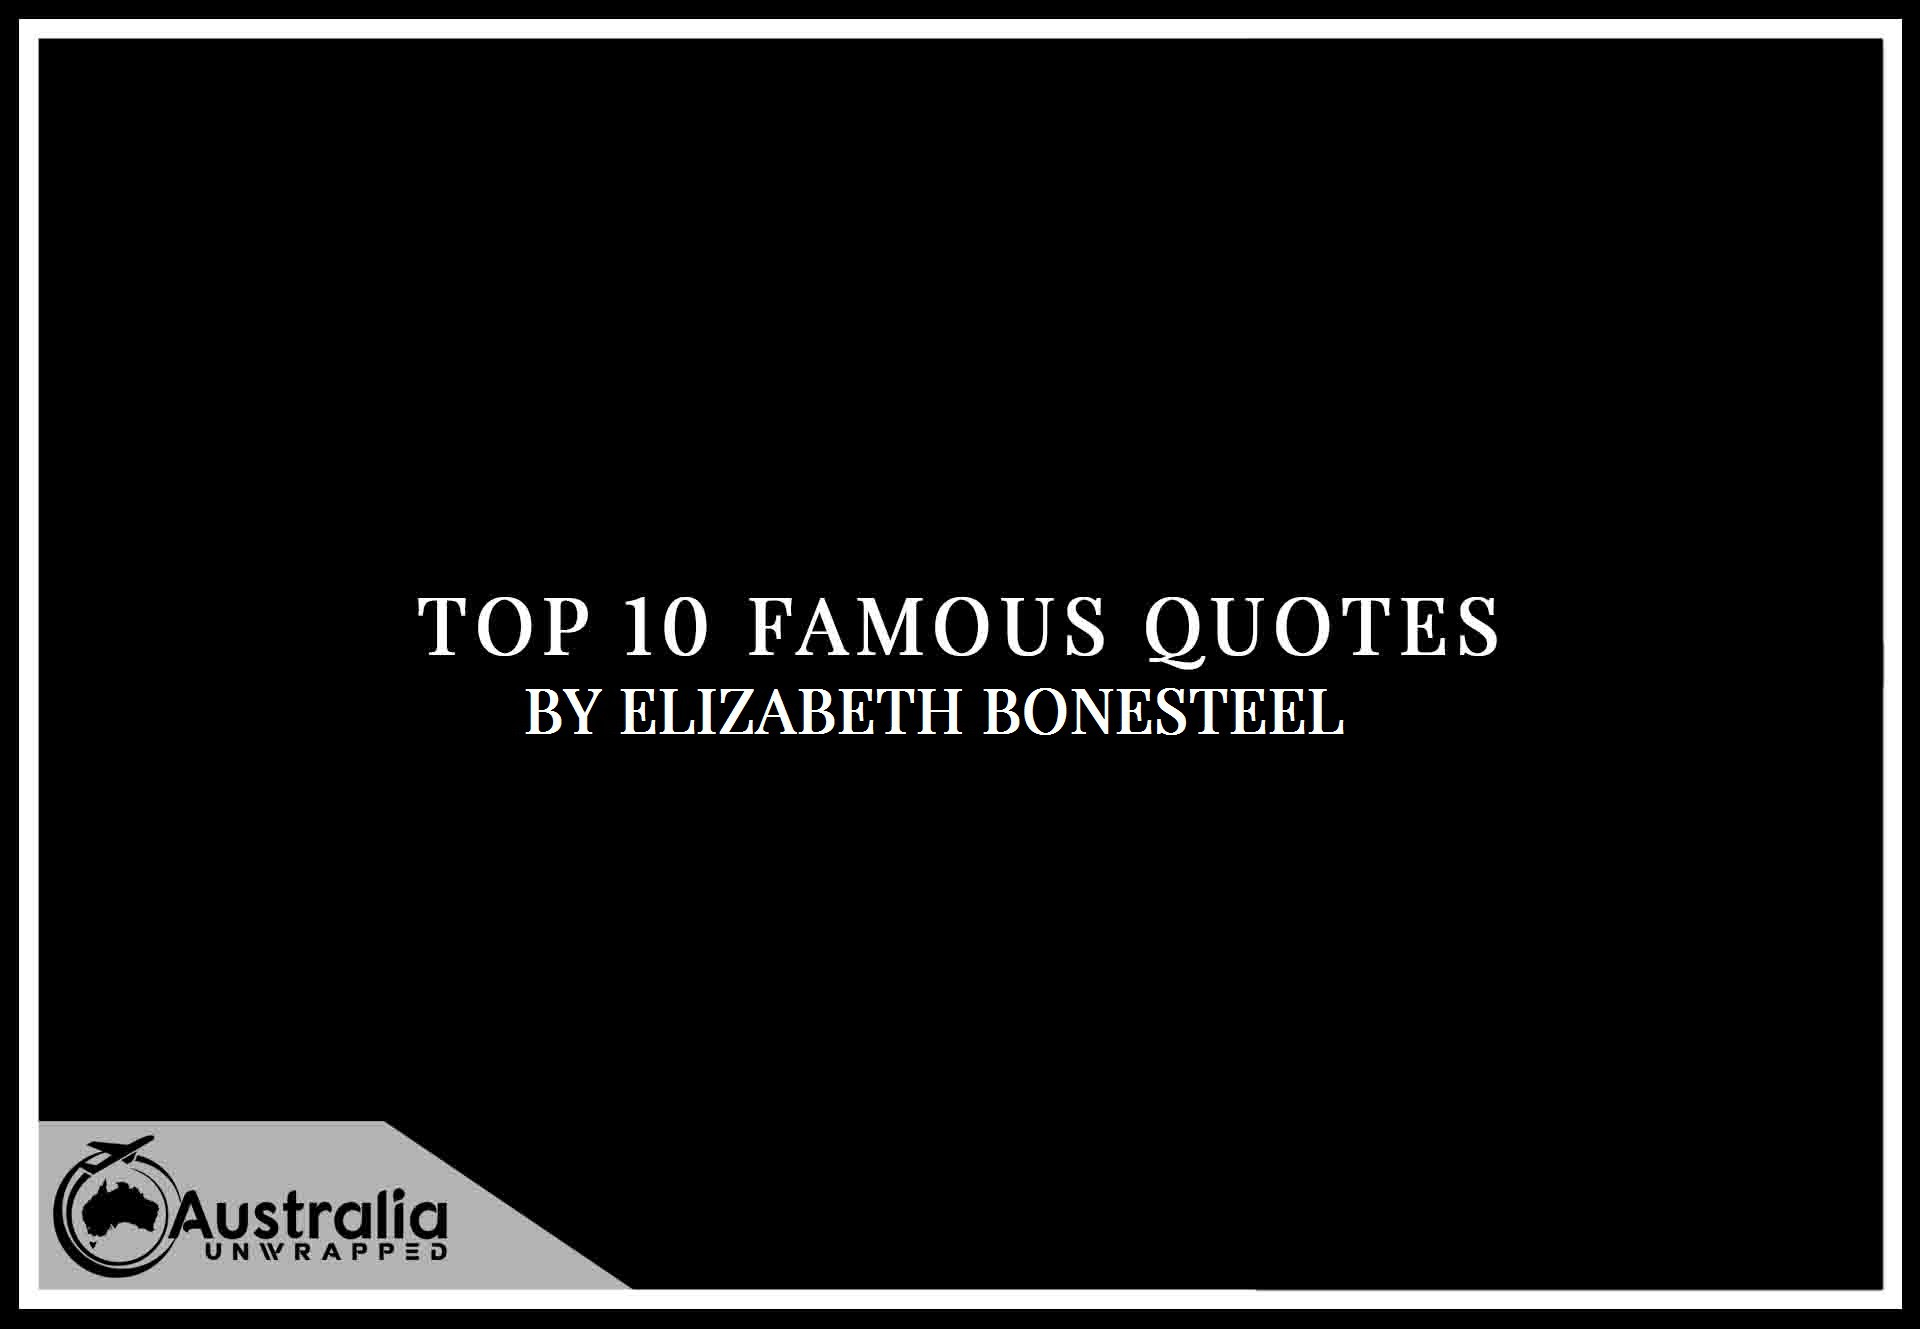 Elizabeth Bonesteel's Top 10 Popular and Famous Quotes